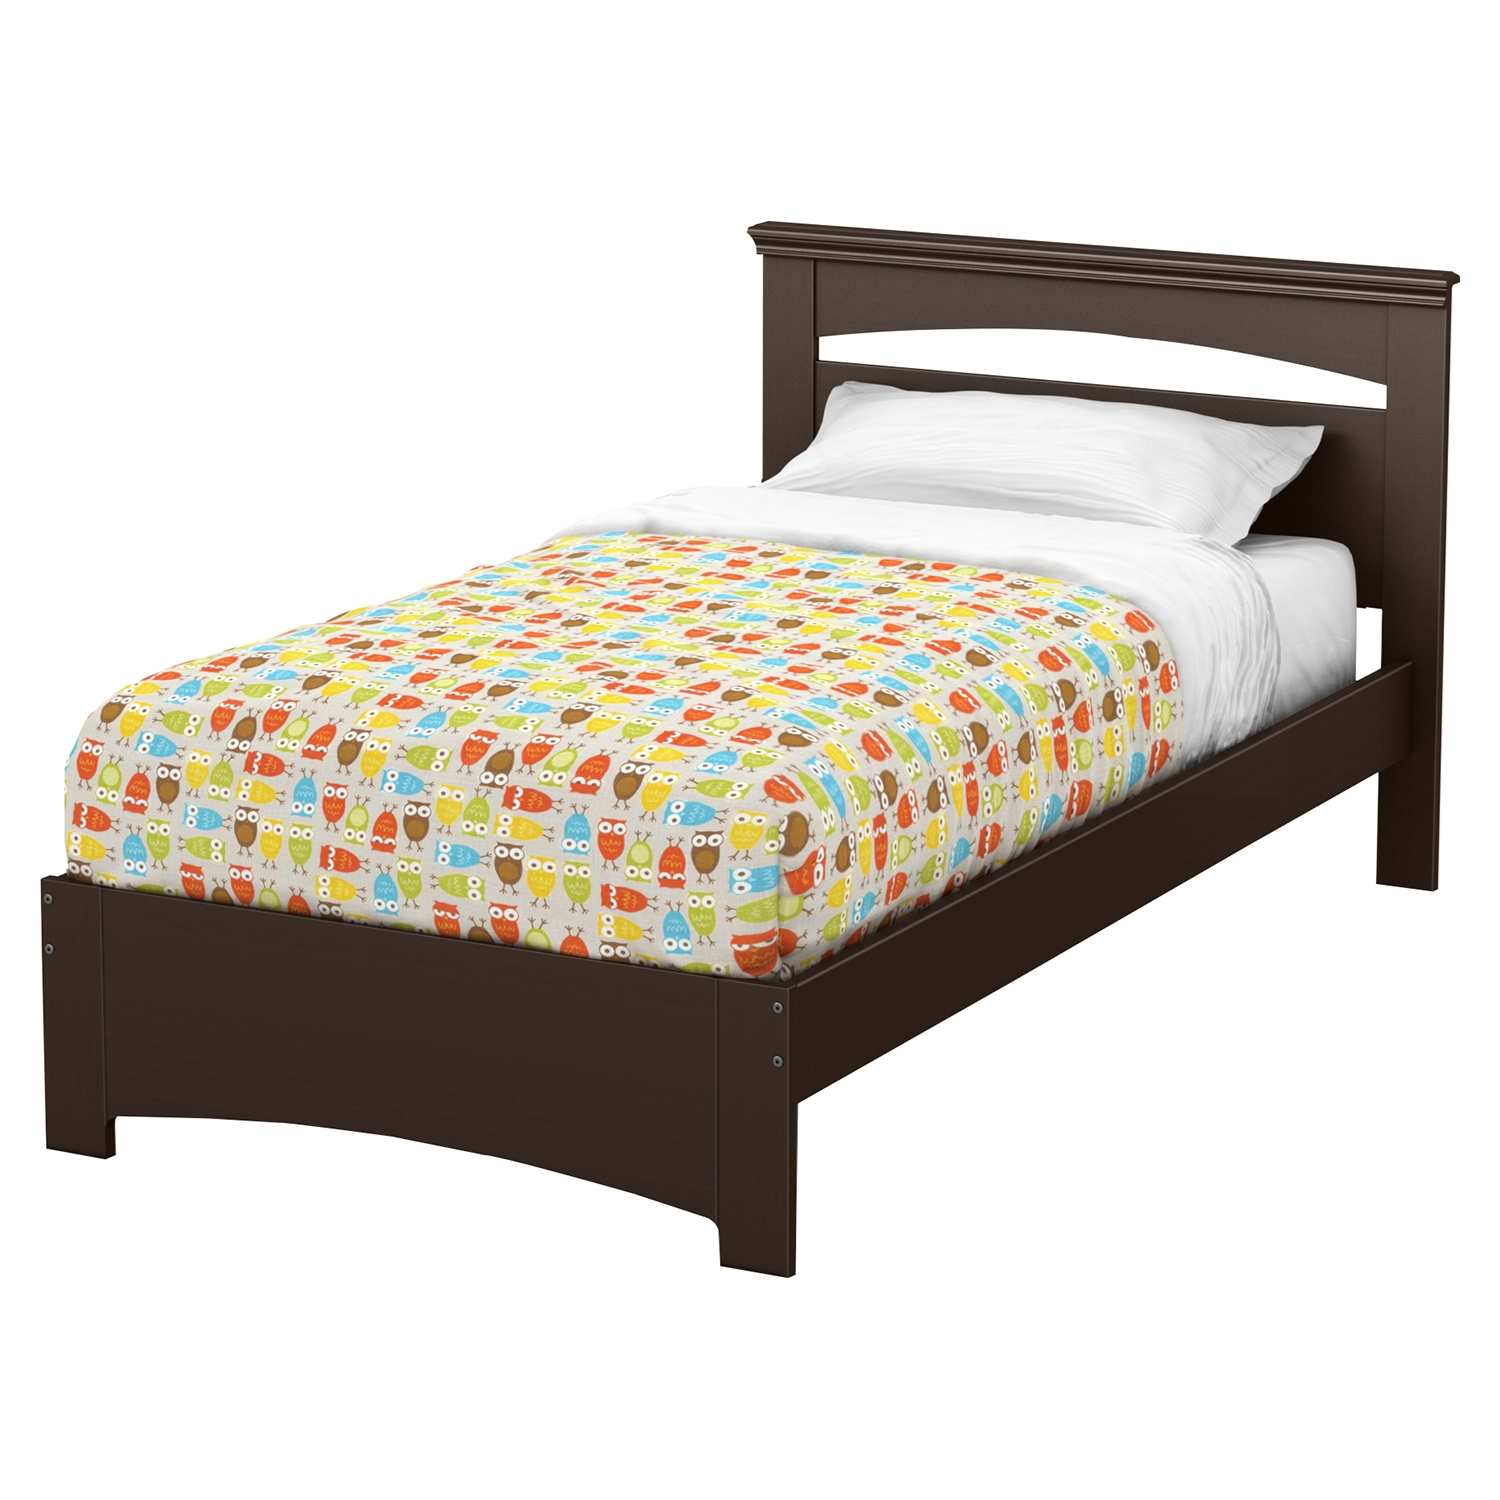 Libra Twin Bed - Chocolate